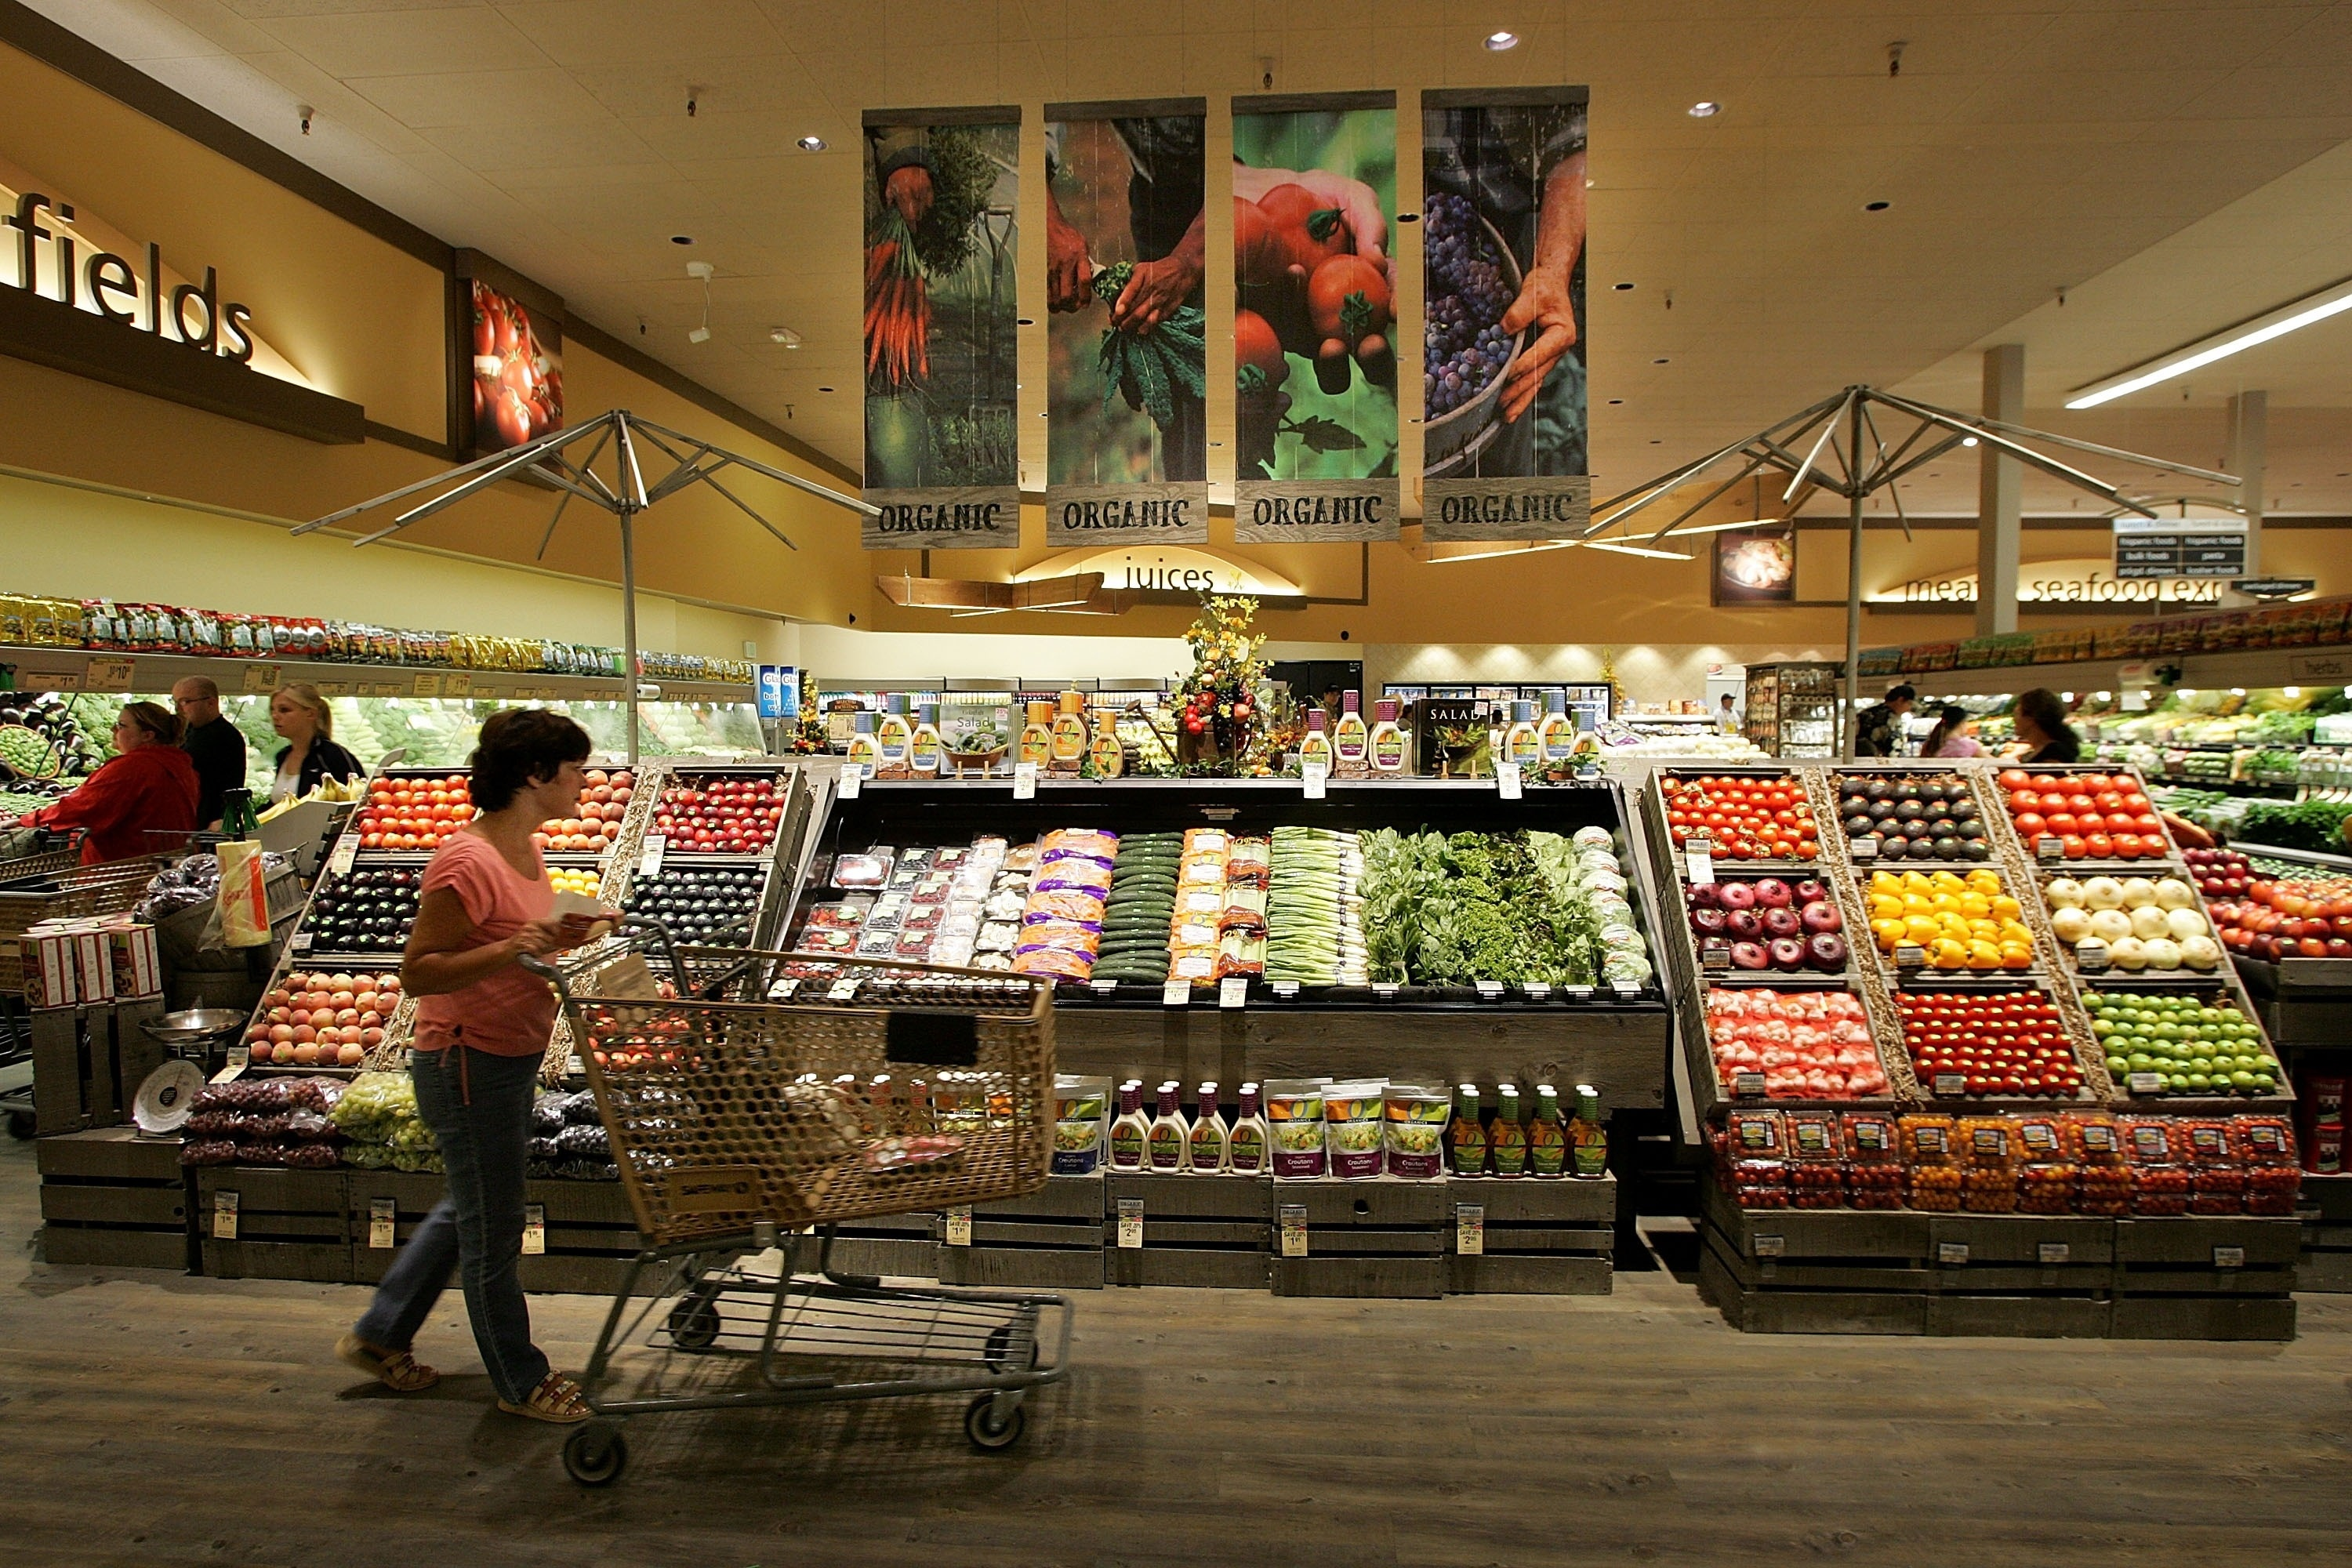 Myth: Healthy food is more expensive than unhealthy food